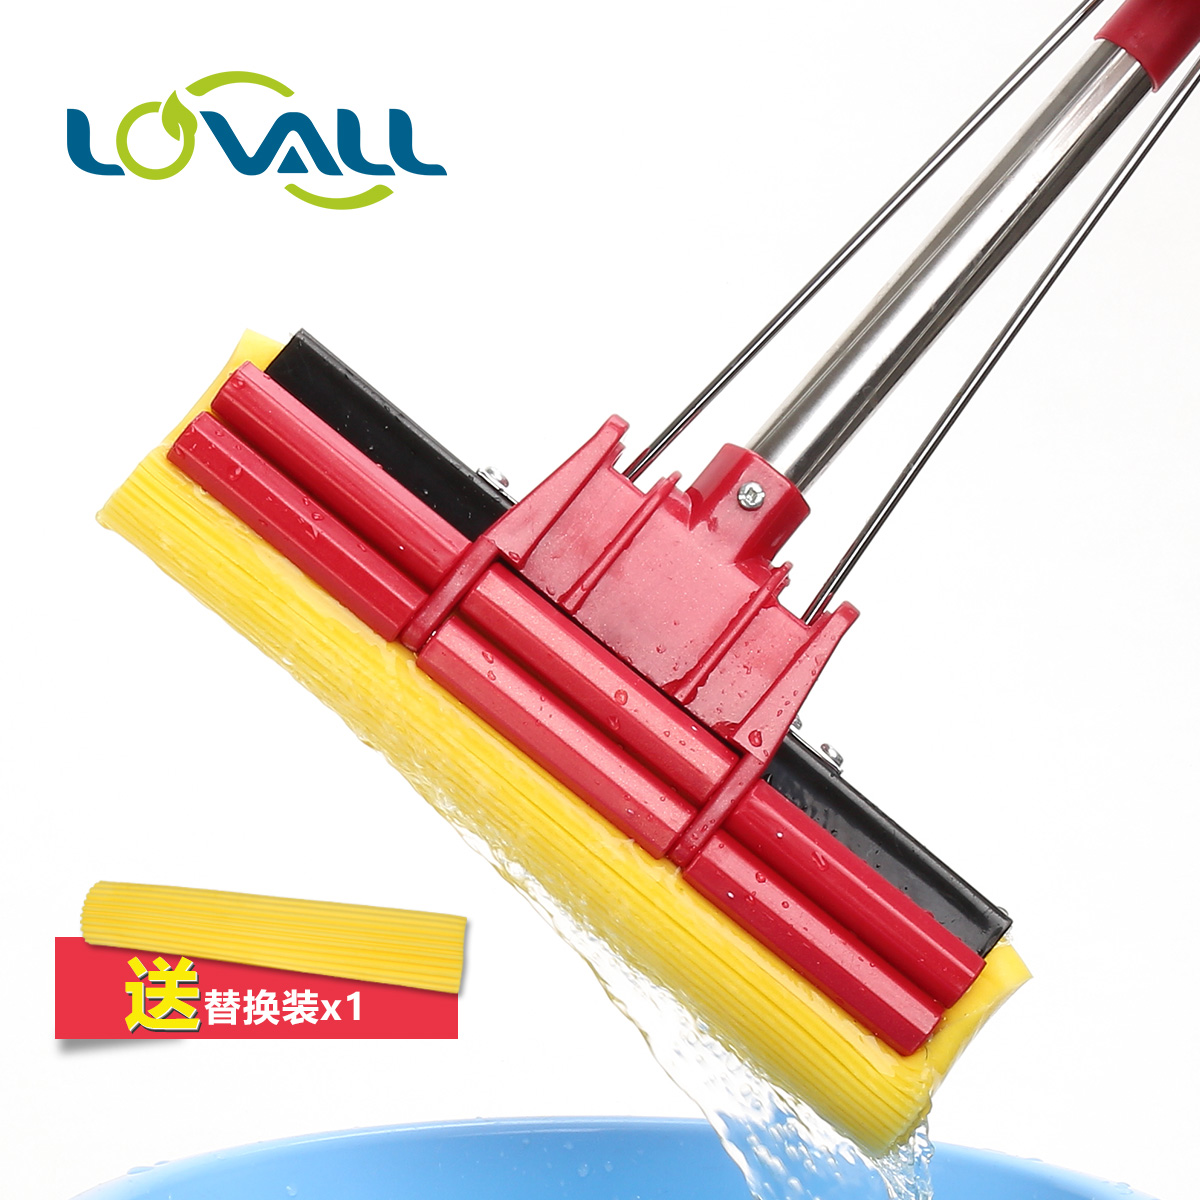 Leyvaux rollers squeeze glue cotton mop water absorbent sponge mop mop stainless steel rod free installation free hand wash mop